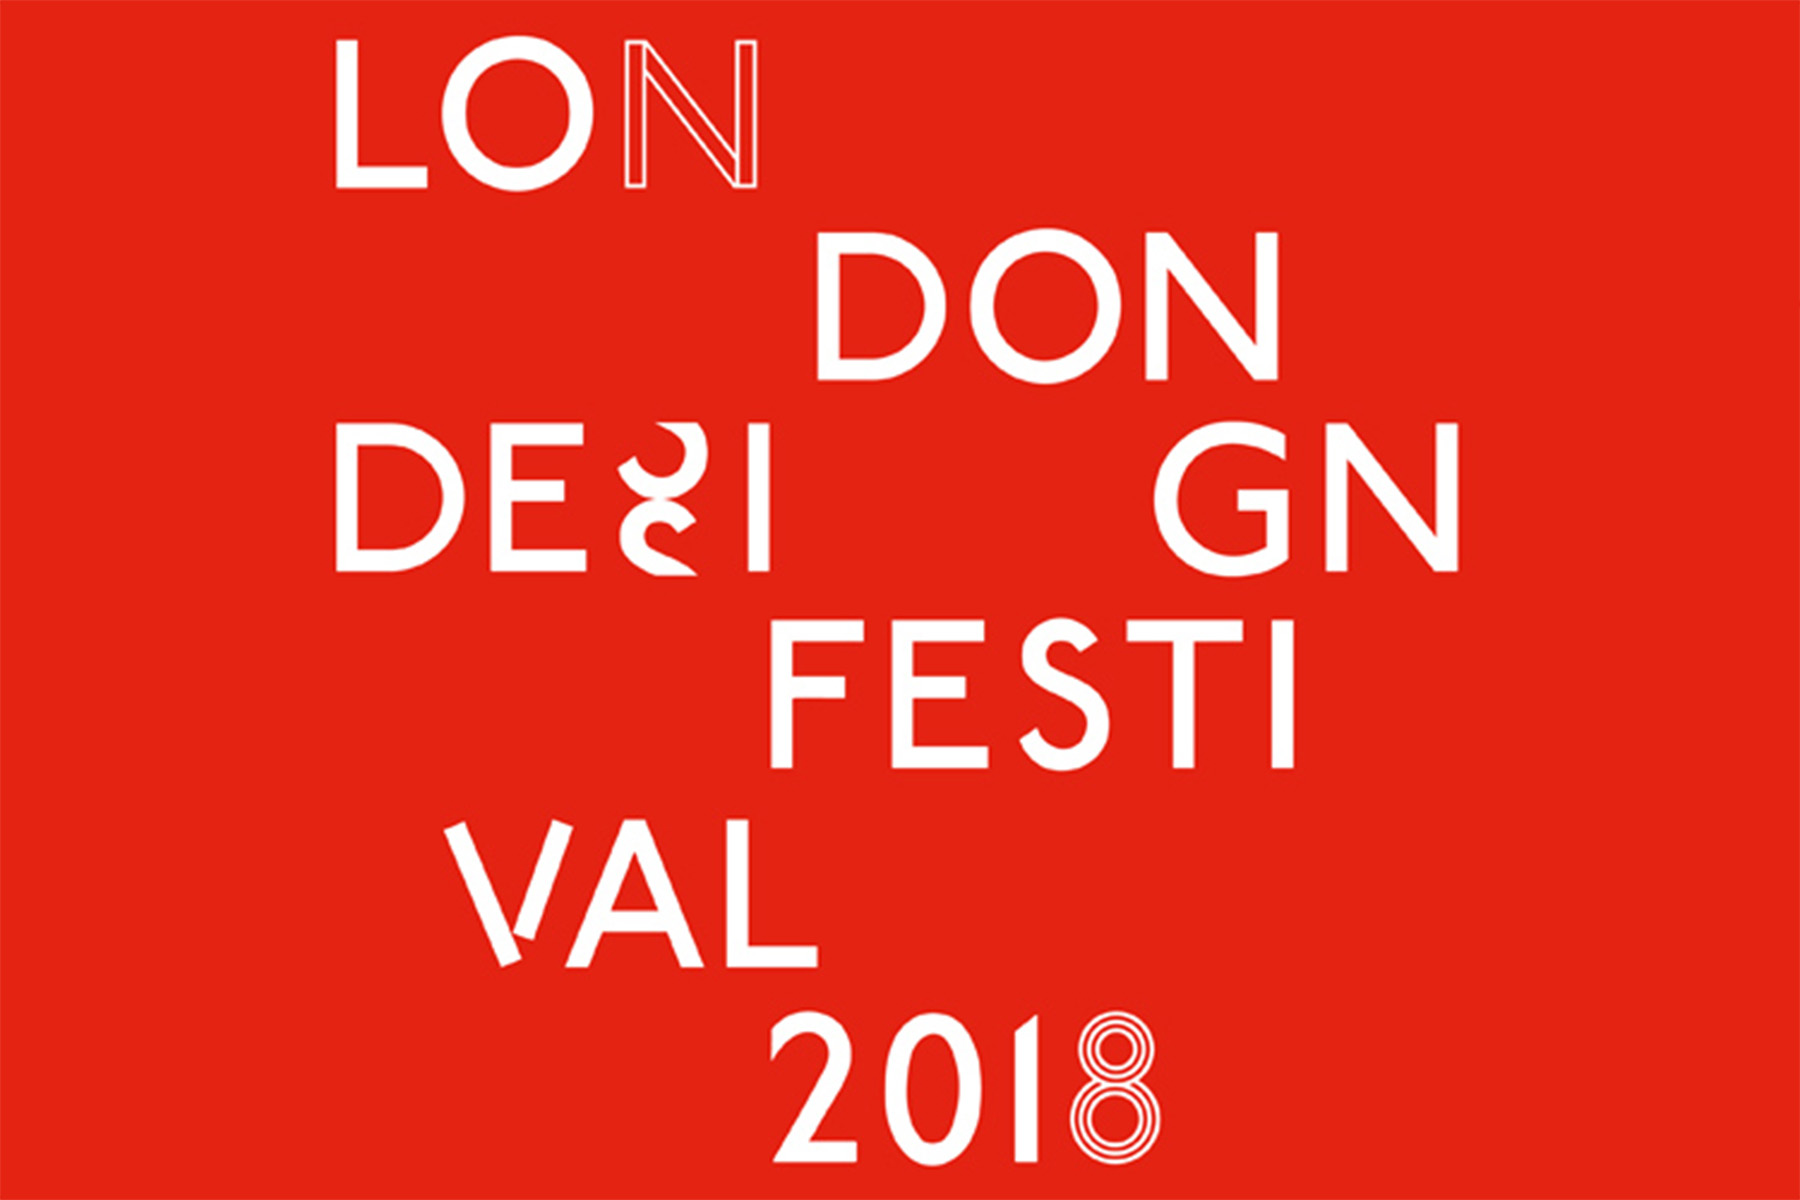 Image for The Design Festival 2018!